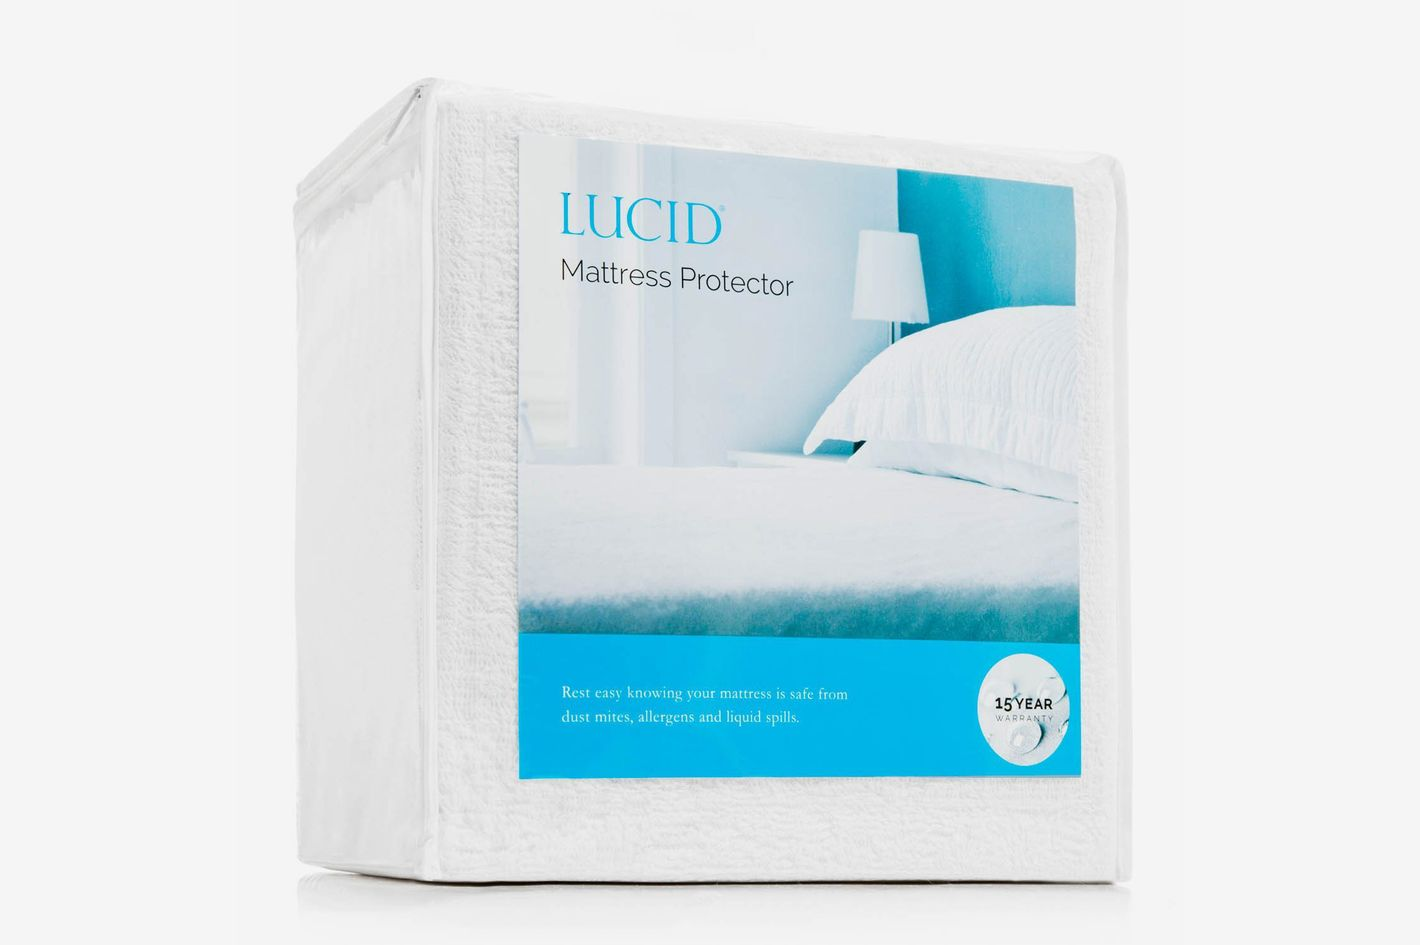 LUCID Premium Hypoallergenic Waterproof Mattress Protector - Queen